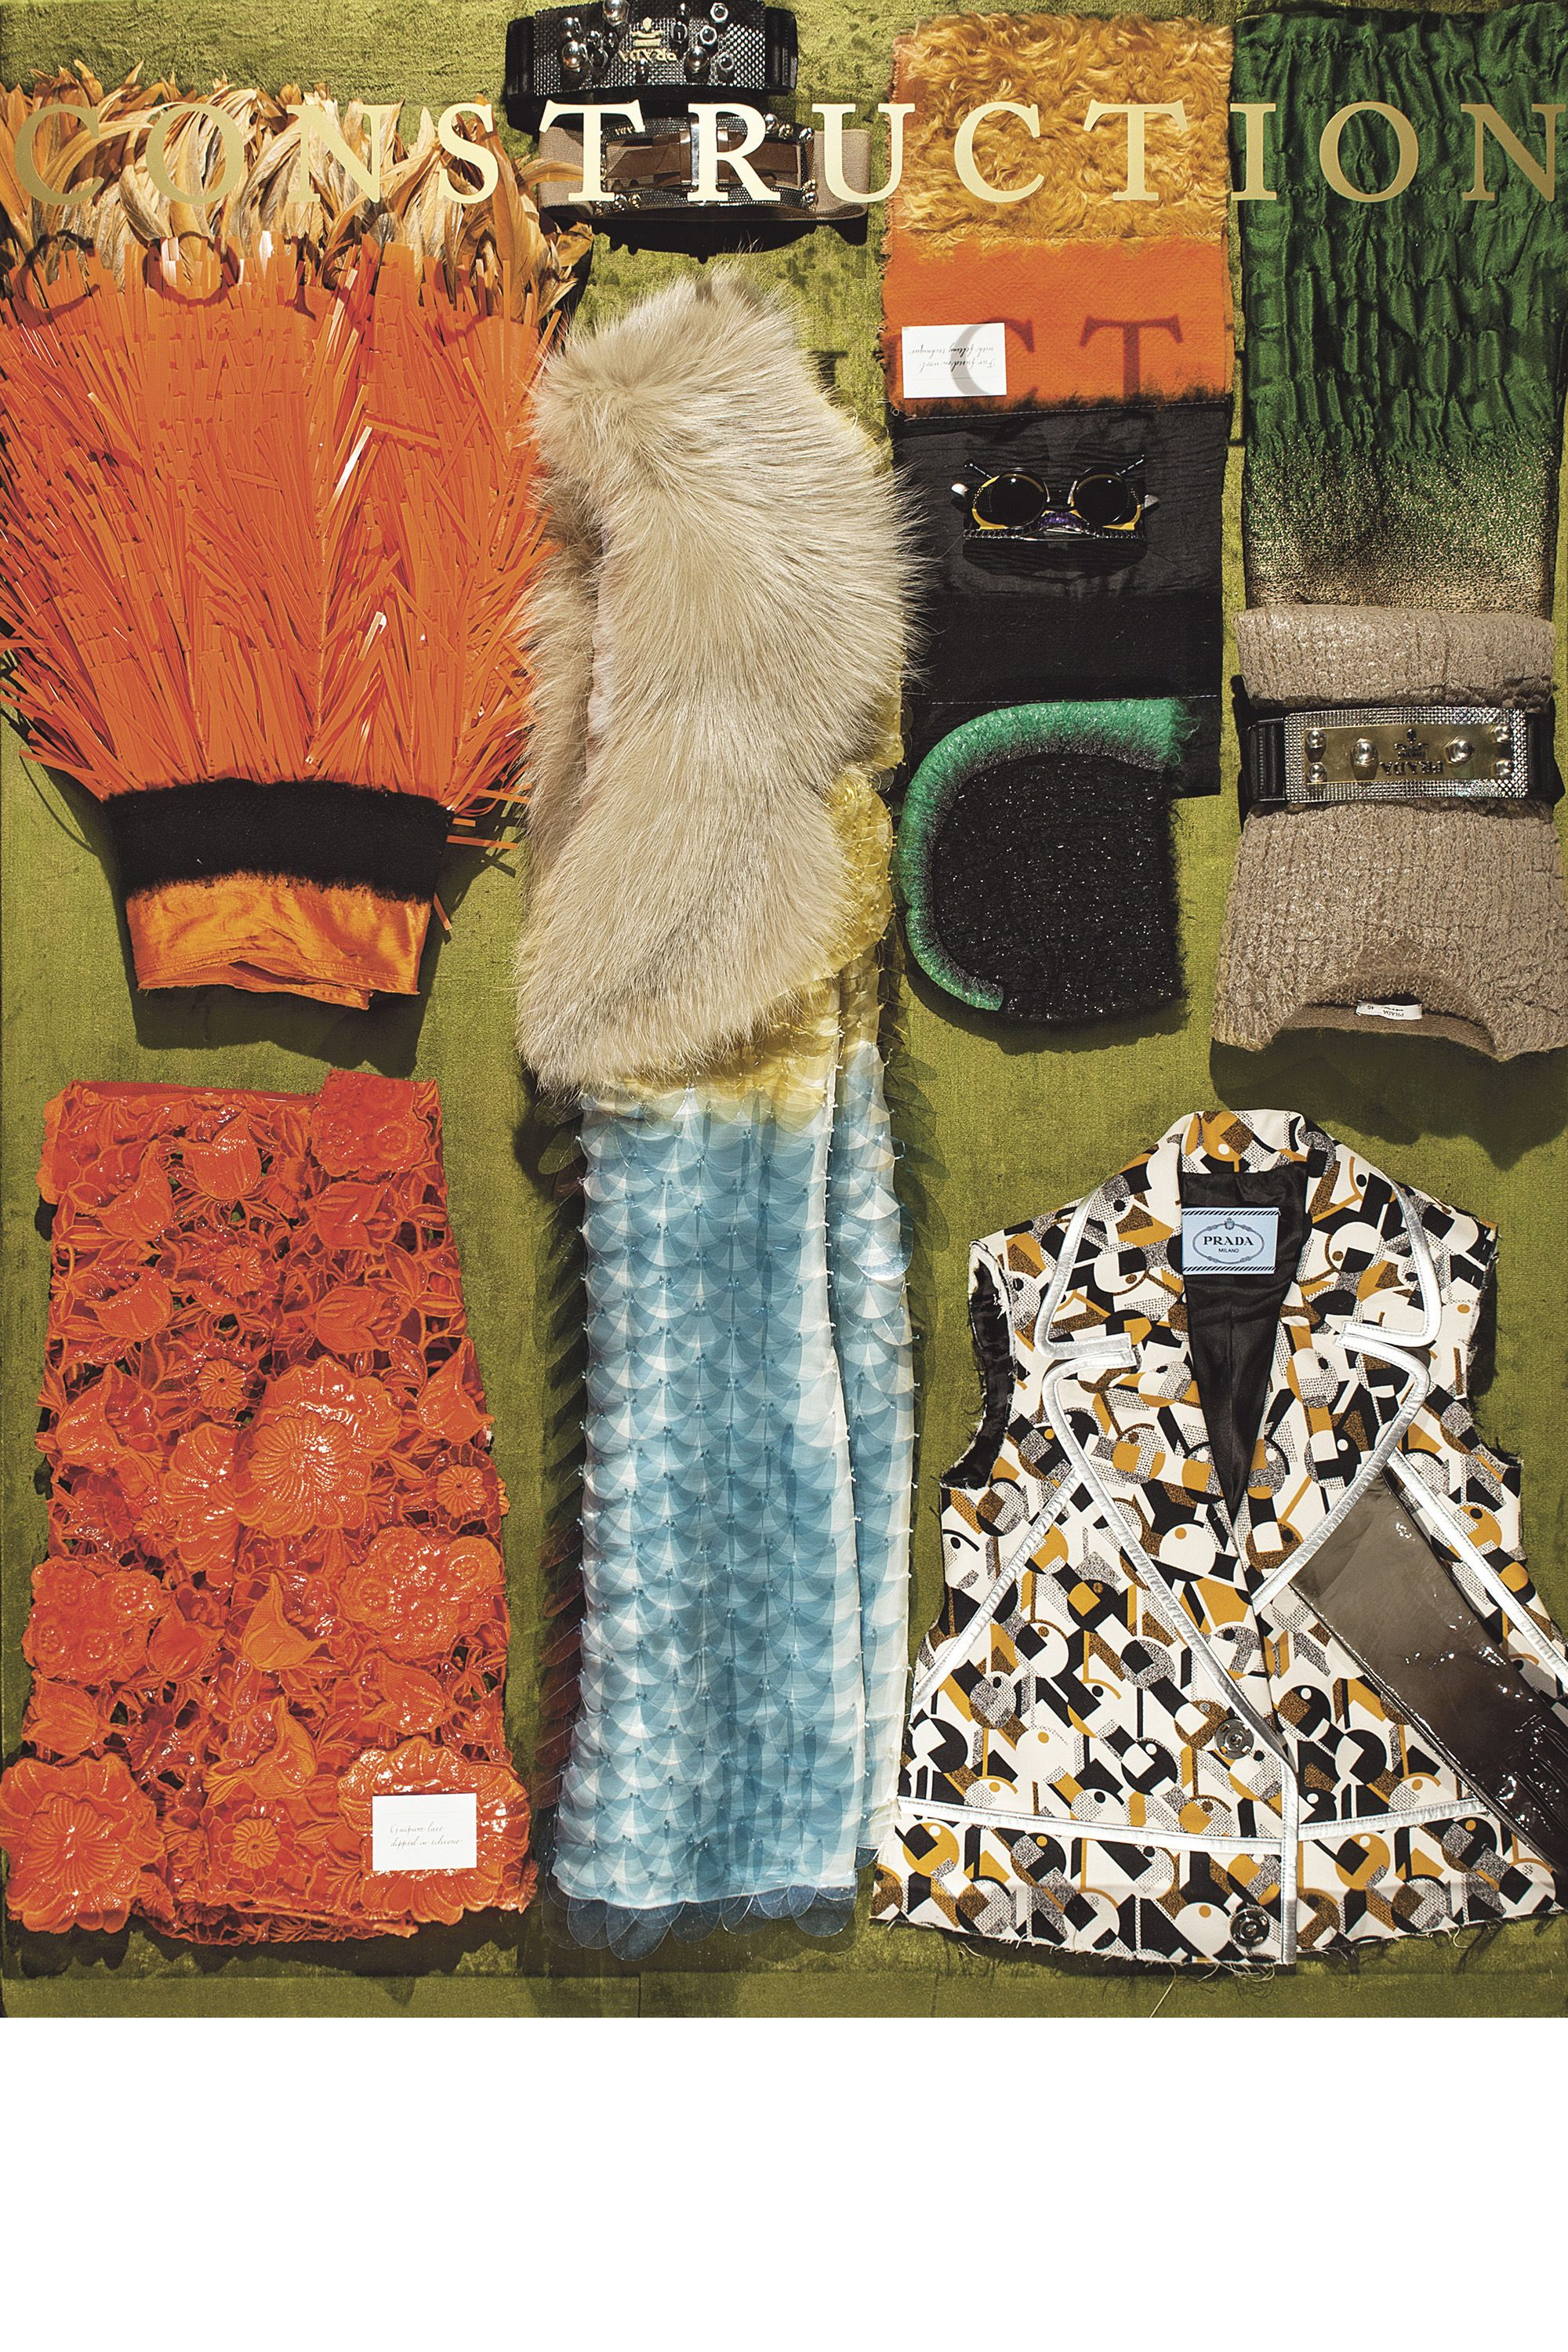 <p>More of Prada's lush furs, supersized paillettes and manipulated fabrics.</p>